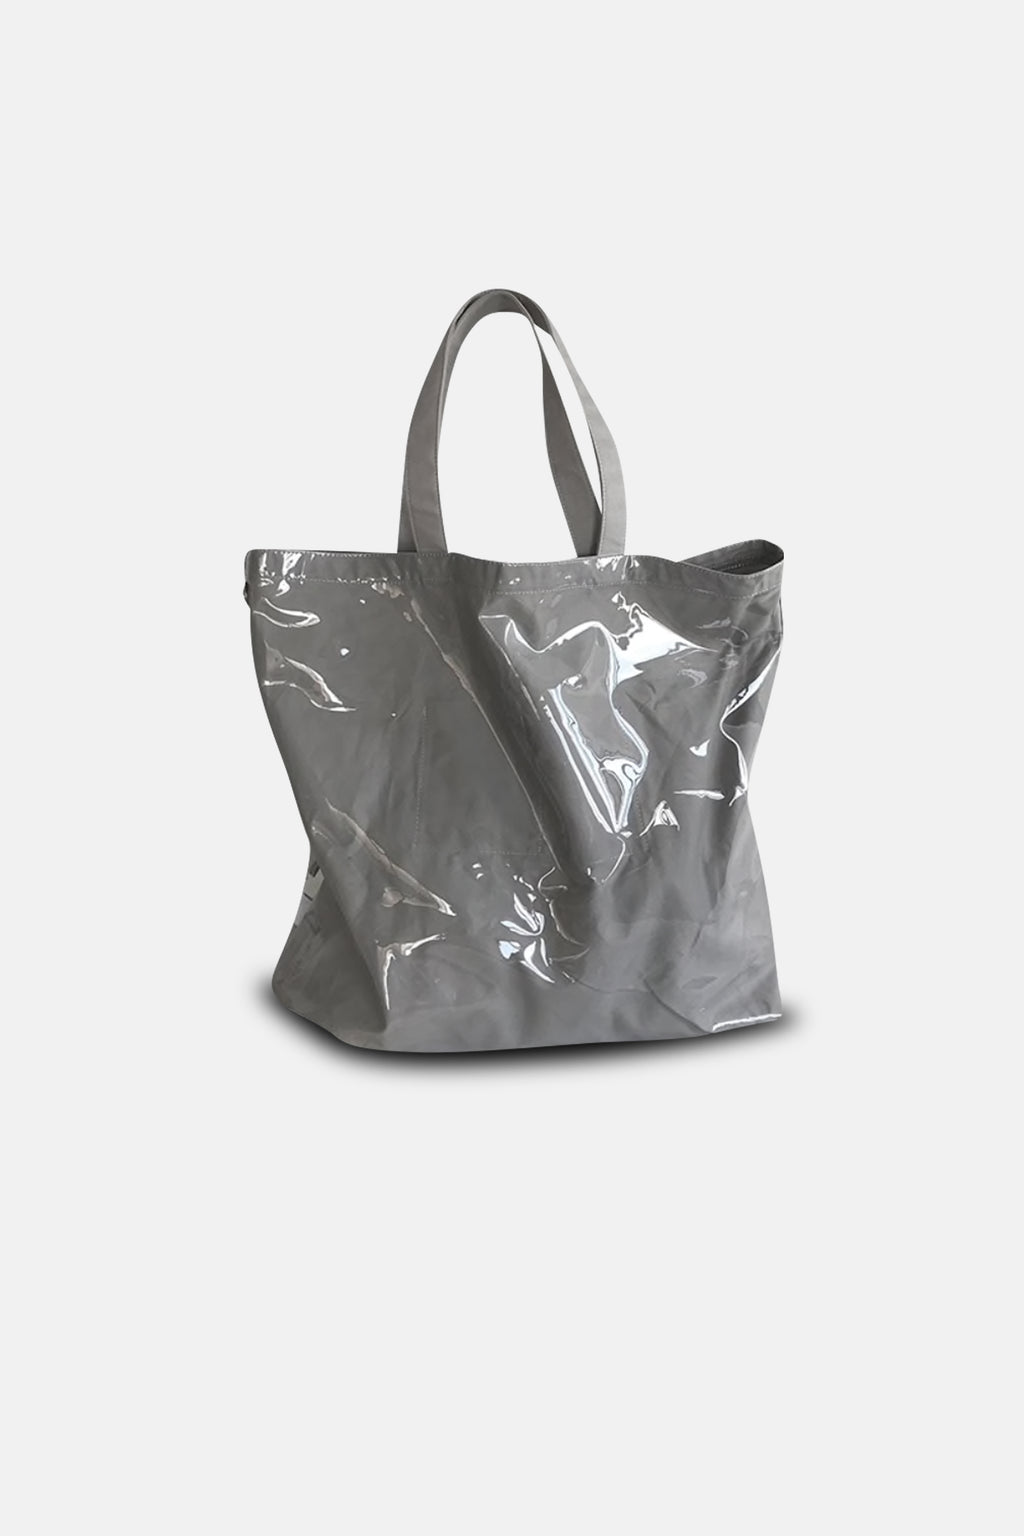 CLEAR GREY TOTE BAG